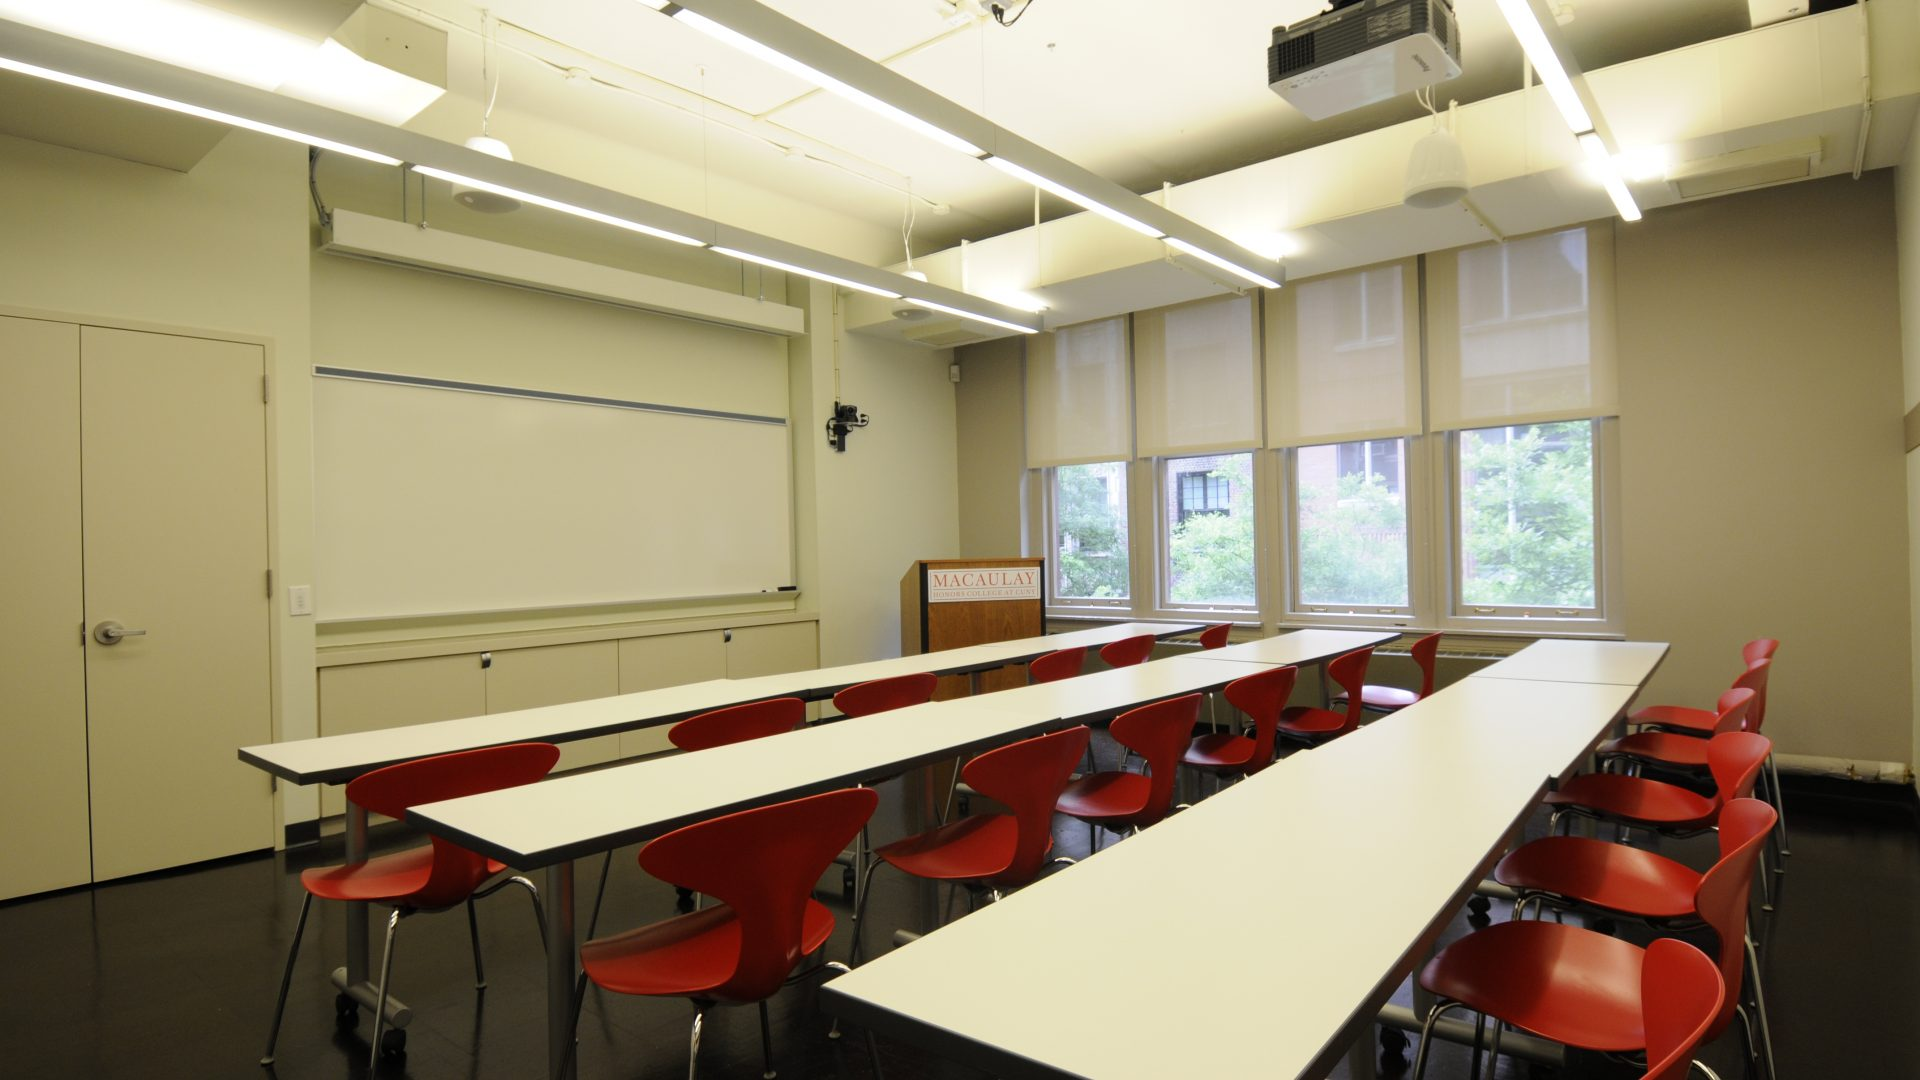 Photo of the Macaulay classrooms